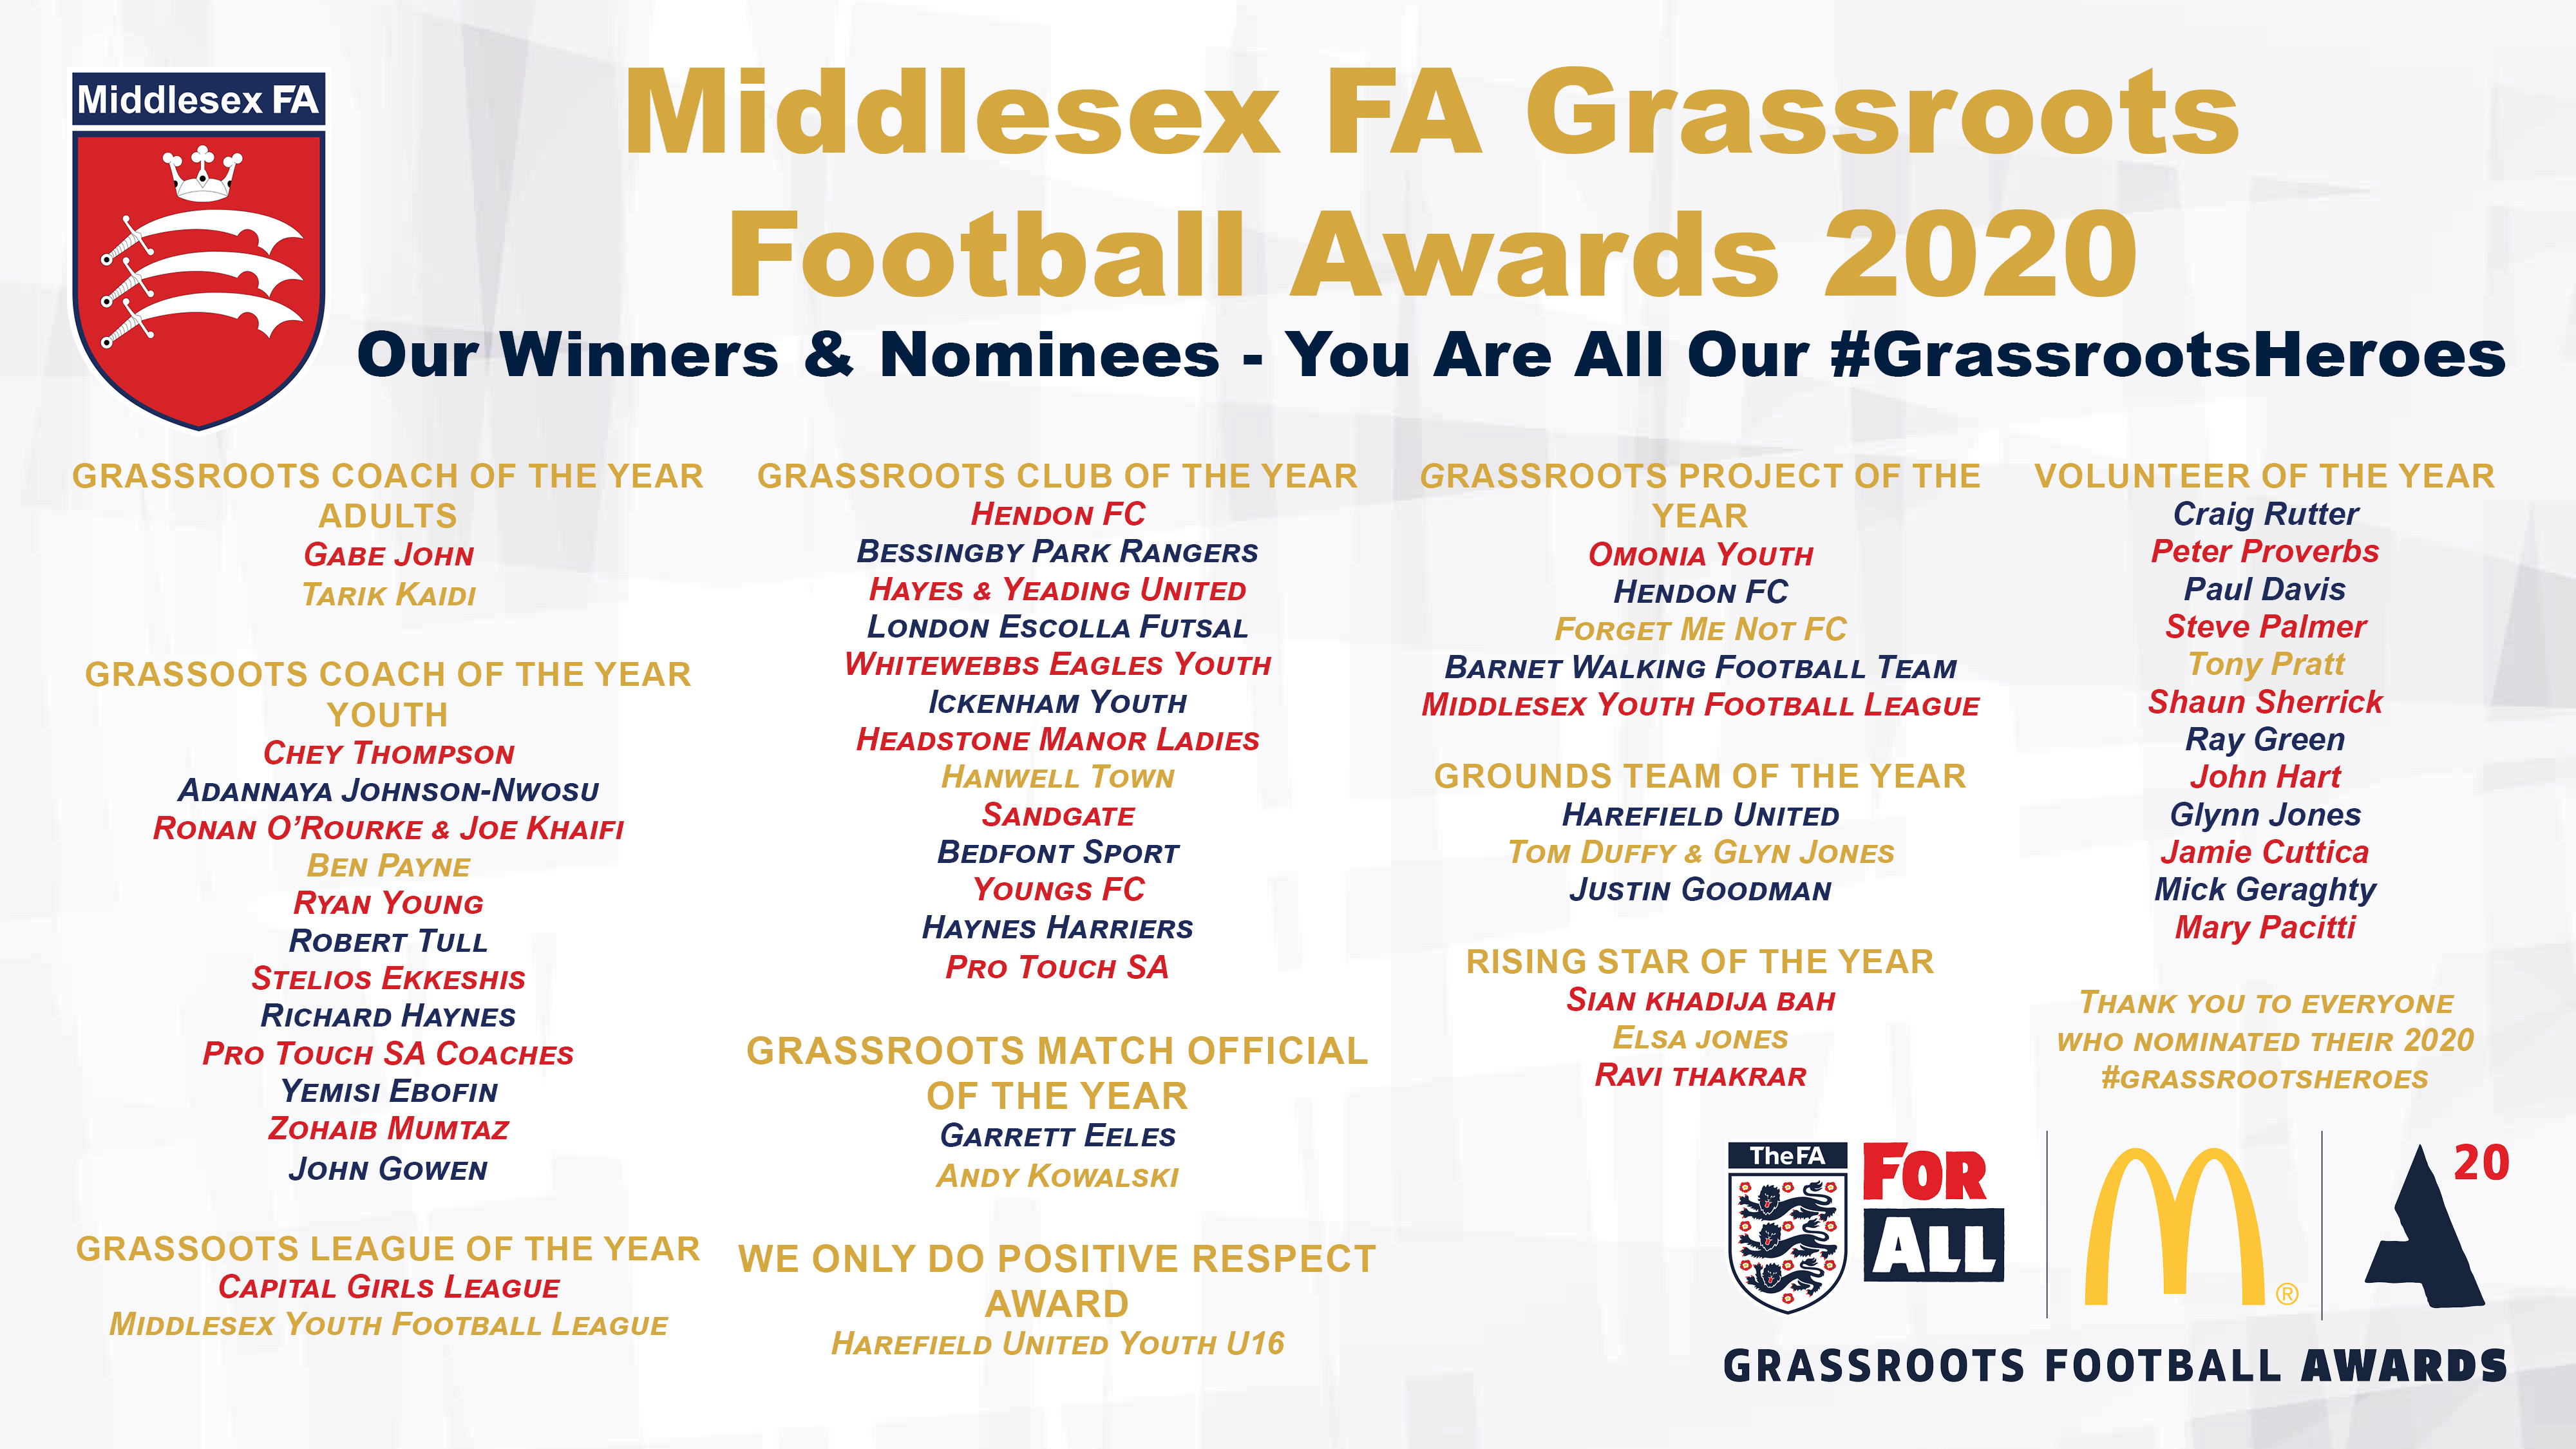 Middlesex GFA 2020 Nominees and Winners